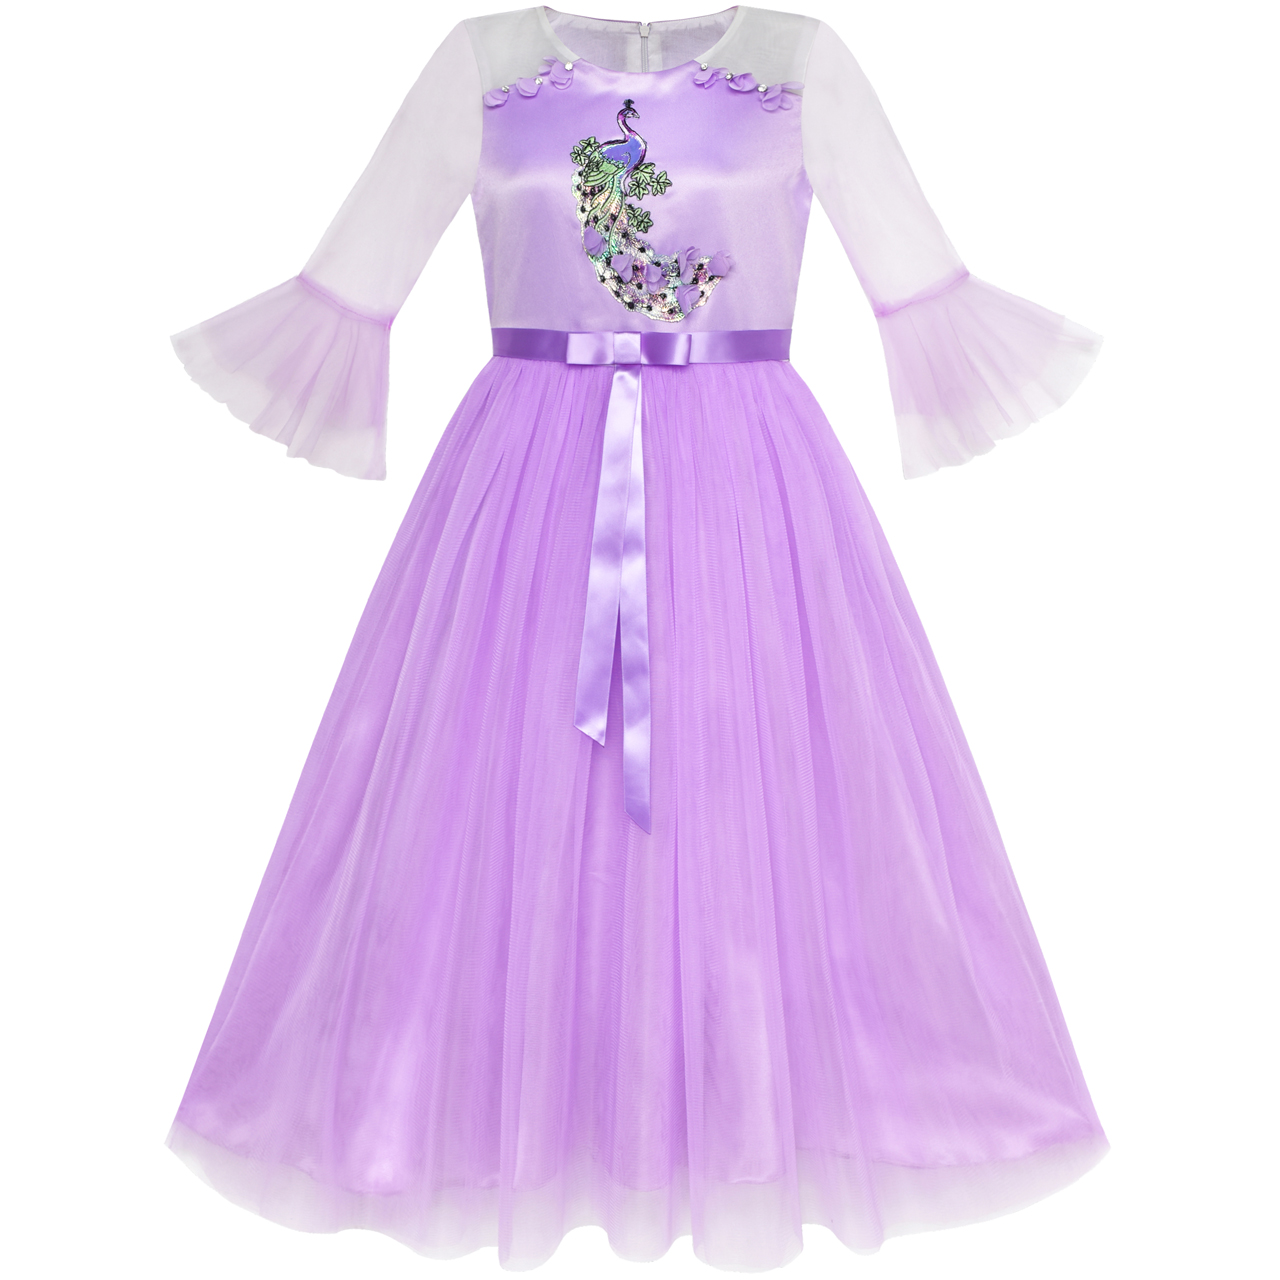 Sunny Fashion Flower Girl Dress Purple Peacock Illusion Shoulder Bell Sleeve 2018 Summer Princess Wedding Party Size 6-12 цена